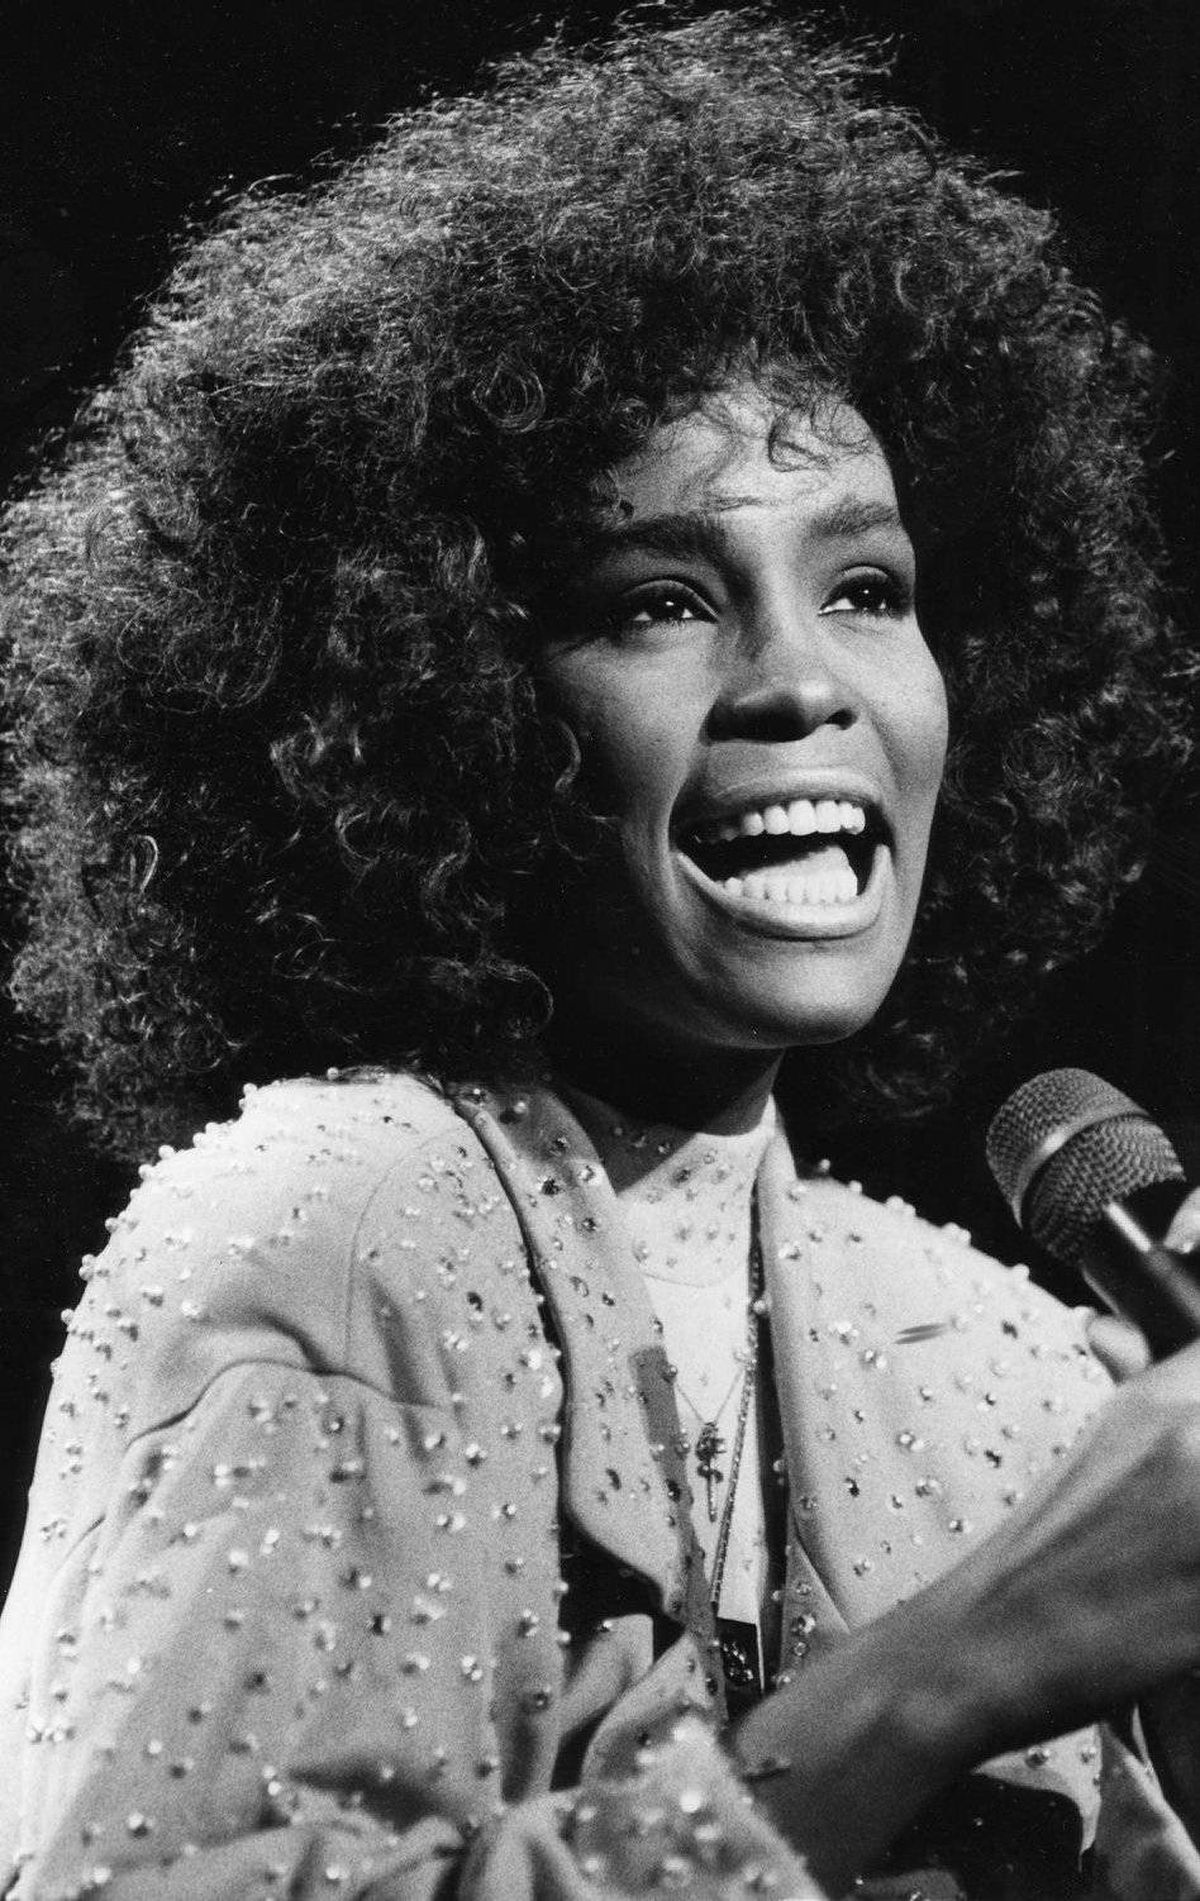 Pop star Whitney Houston was only 23 years old when she dazzled Toronto Aug 22, 1986. Nearly 25,000 fans gathered at Toronto's Canadian National Exhibition grounds to hear the star performer.